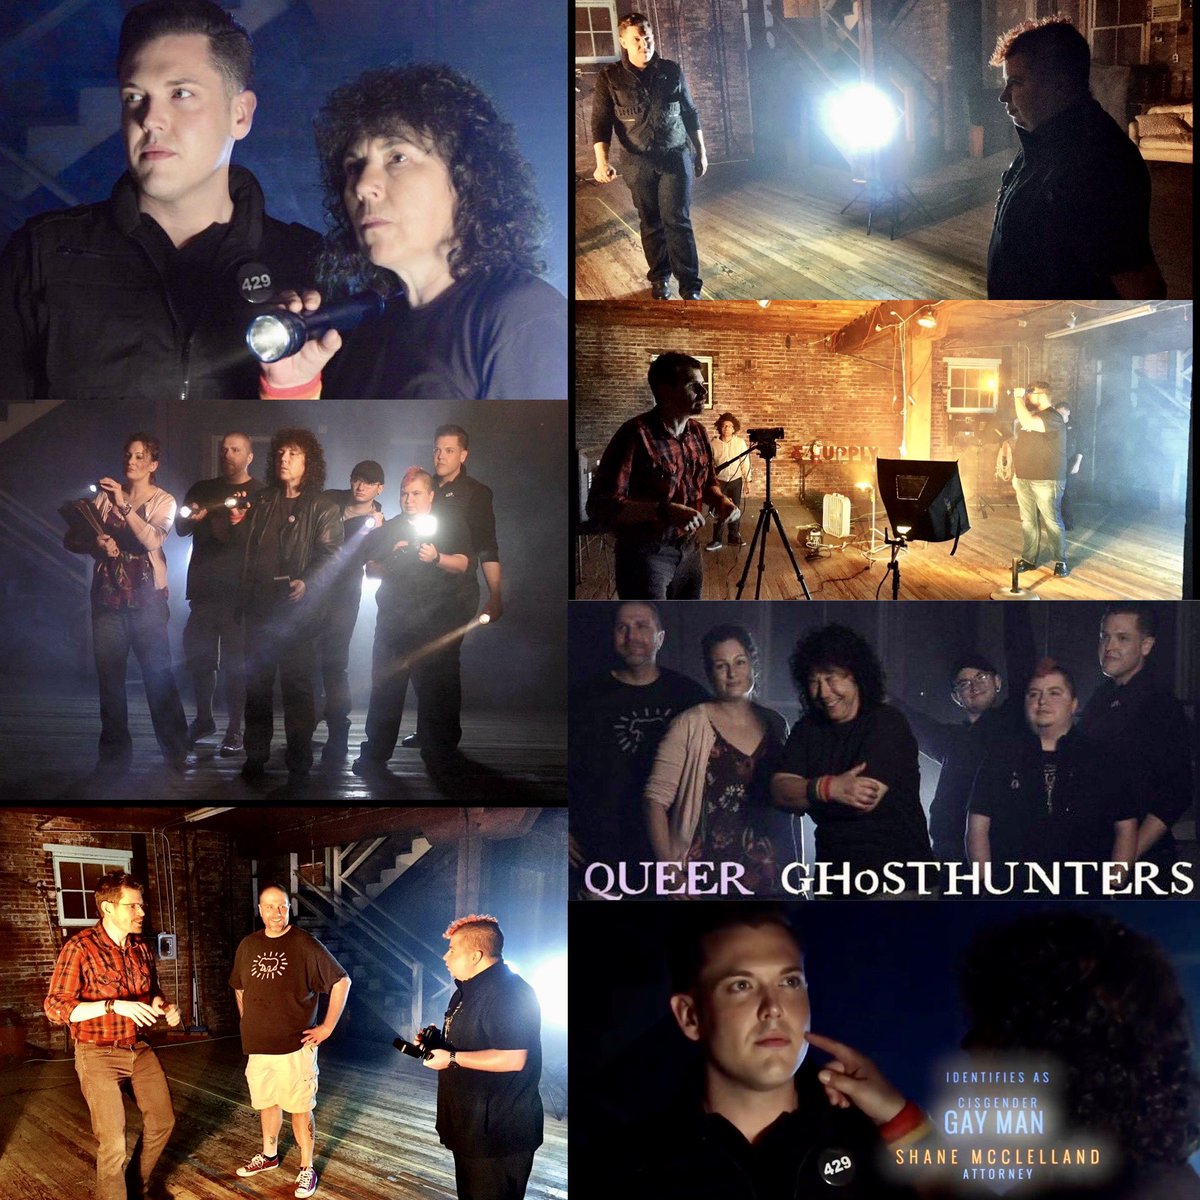 4 years ago we were knee-deep in a weird idea - create a paranormal series that would focus on LGBTQ history and entities. It would lead us on amazing adventures and create the awarding winning show Queer Ghost Hunters. Below are some stills from the promo shoot. 🏳️🌈 👻